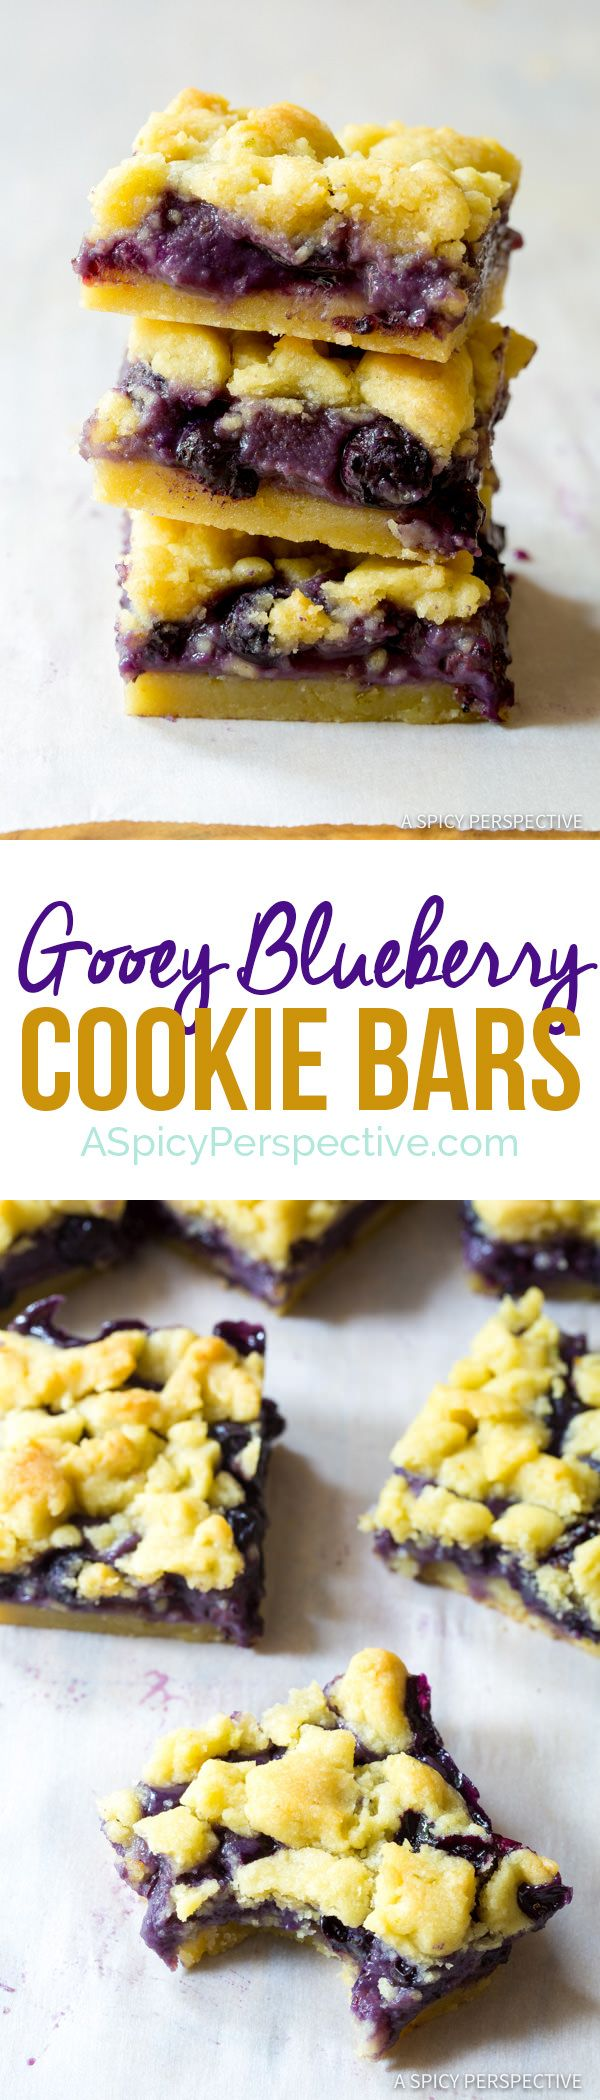 The Best Gooey Blueberry Cookie Bars | ASpicyPerspective.com